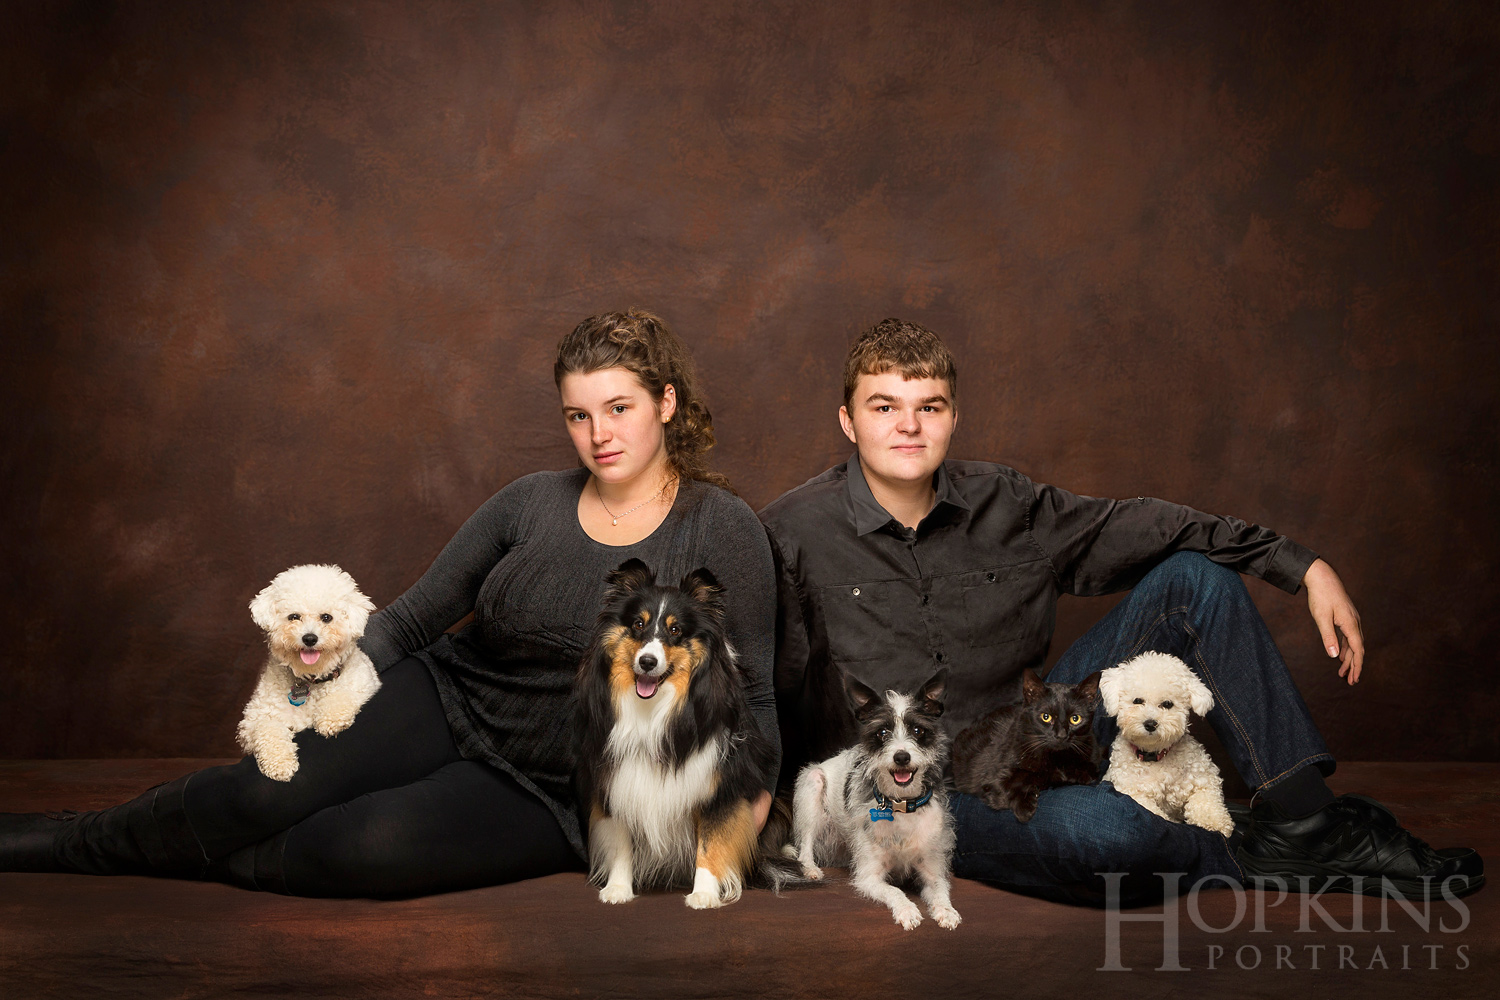 Soules_dogs_cats_portraits.jpg